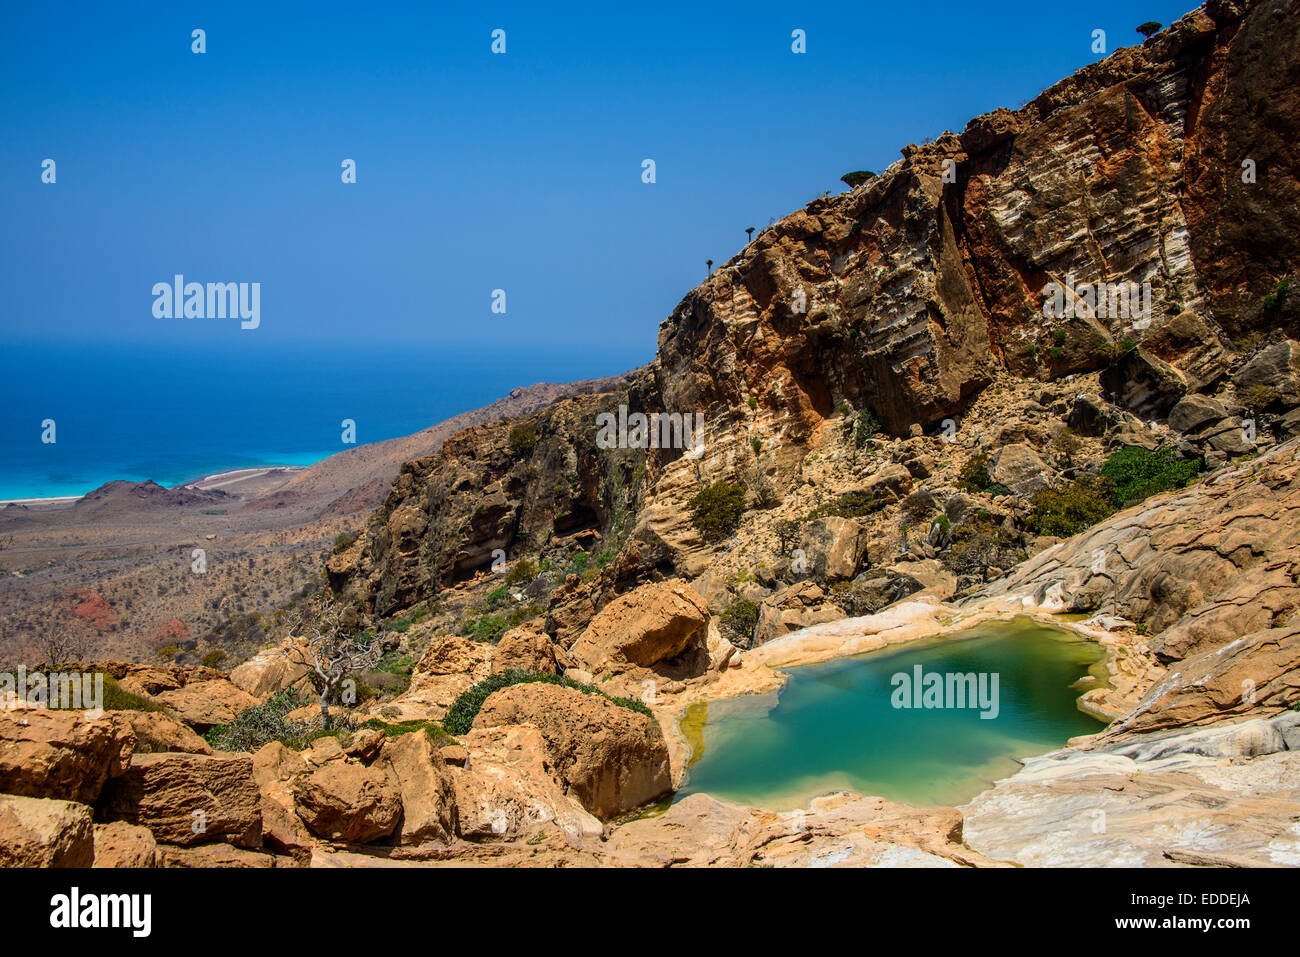 Pond at the coast, Homhil protected area, island of Socotra, Yemen - Stock Image